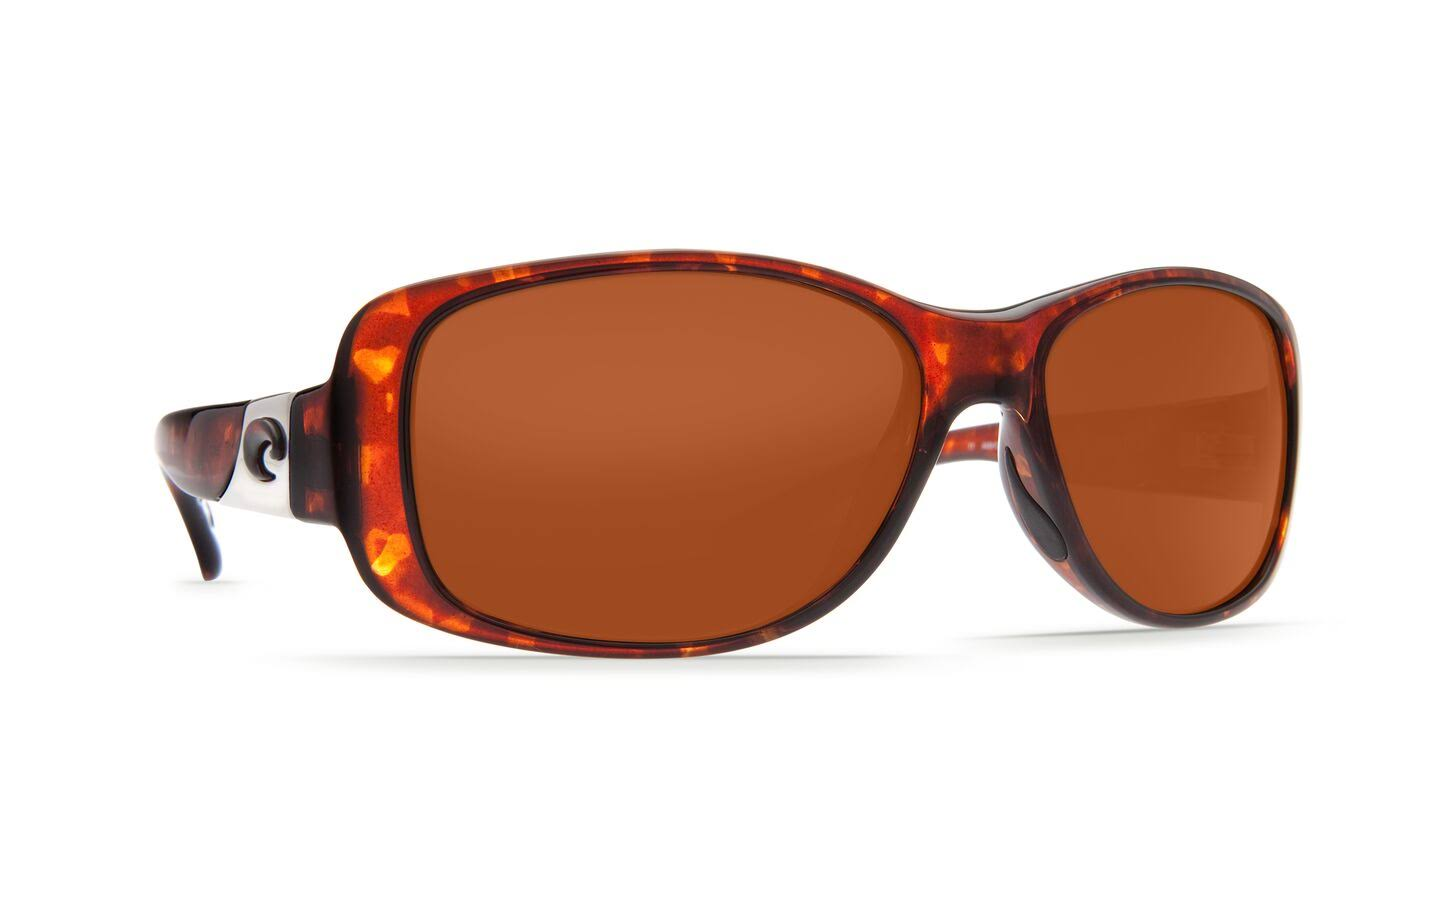 Costa Del Mar Tippet Sunglasses - Tortoise, Copper 580P Lens